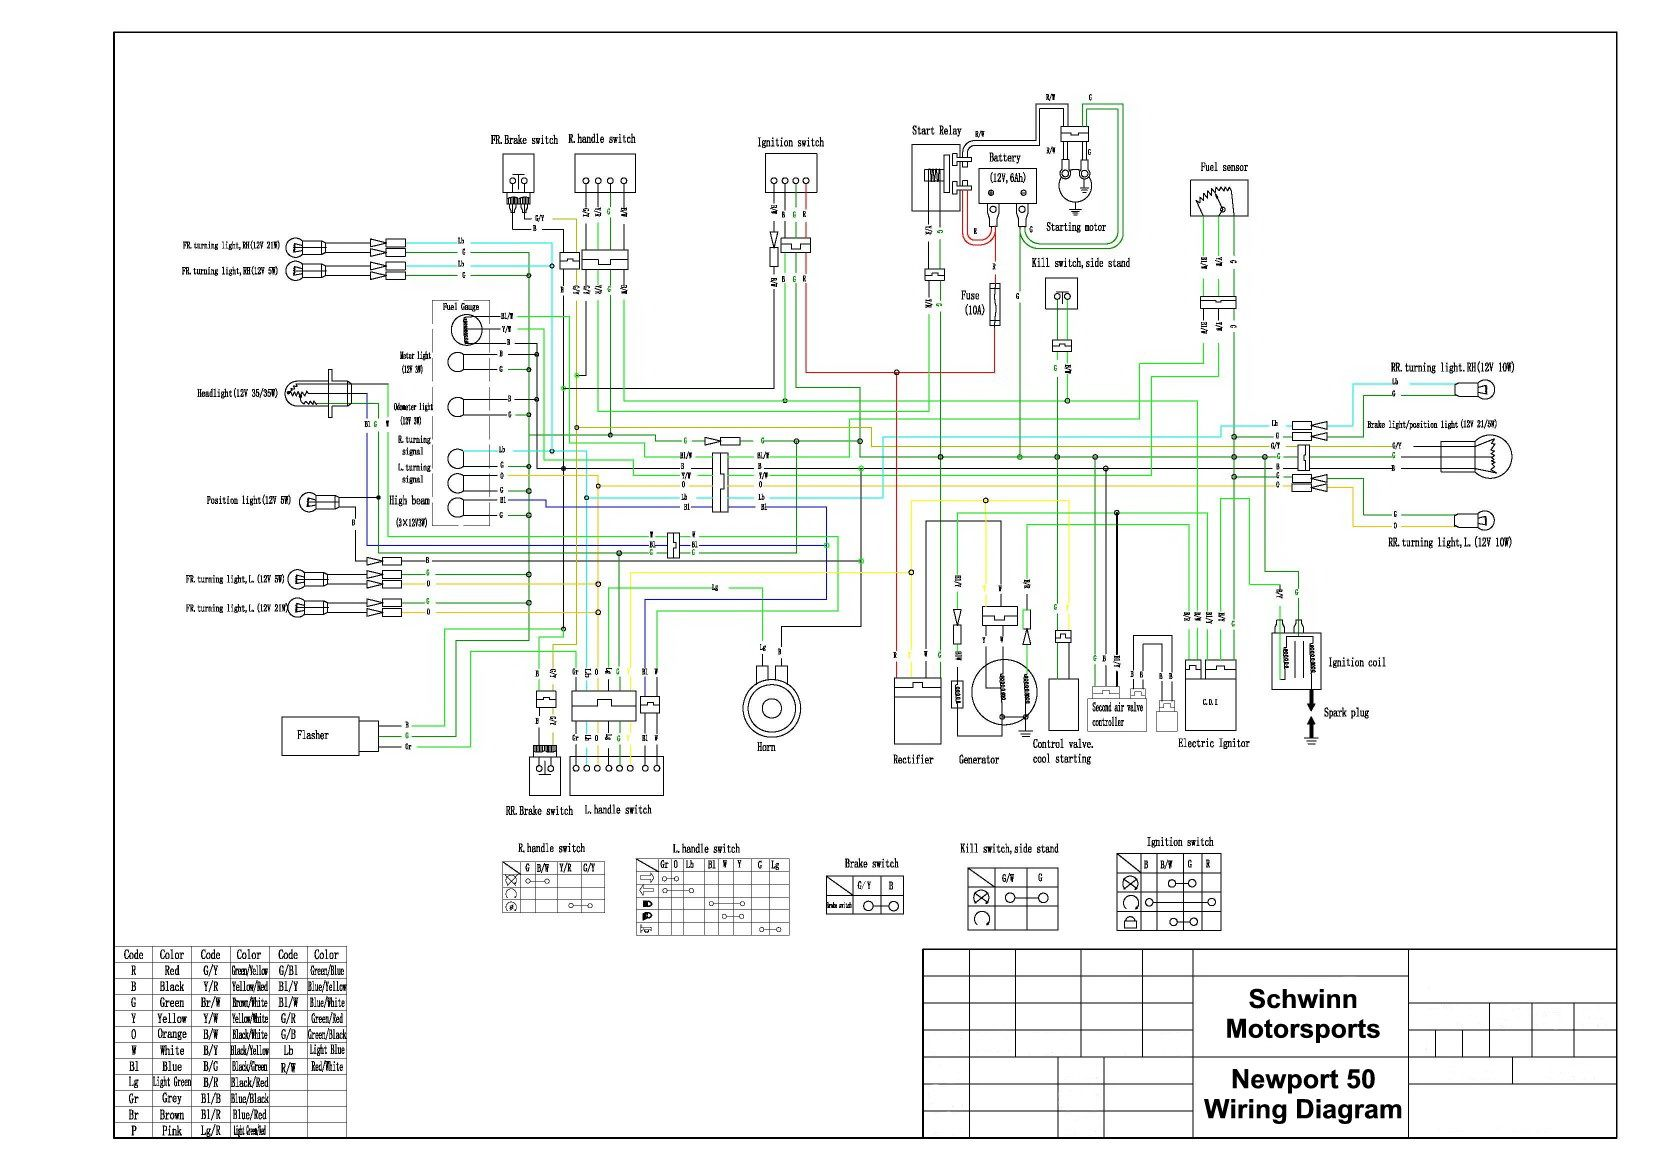 CE_0717] Scooter Carburetor Diagram On 2012 Taotao 49Cc Scooter Wiring  Diagram Download DiagramIfica Awni Eopsy Peted Oidei Vira Mohammedshrine Librar Wiring 101